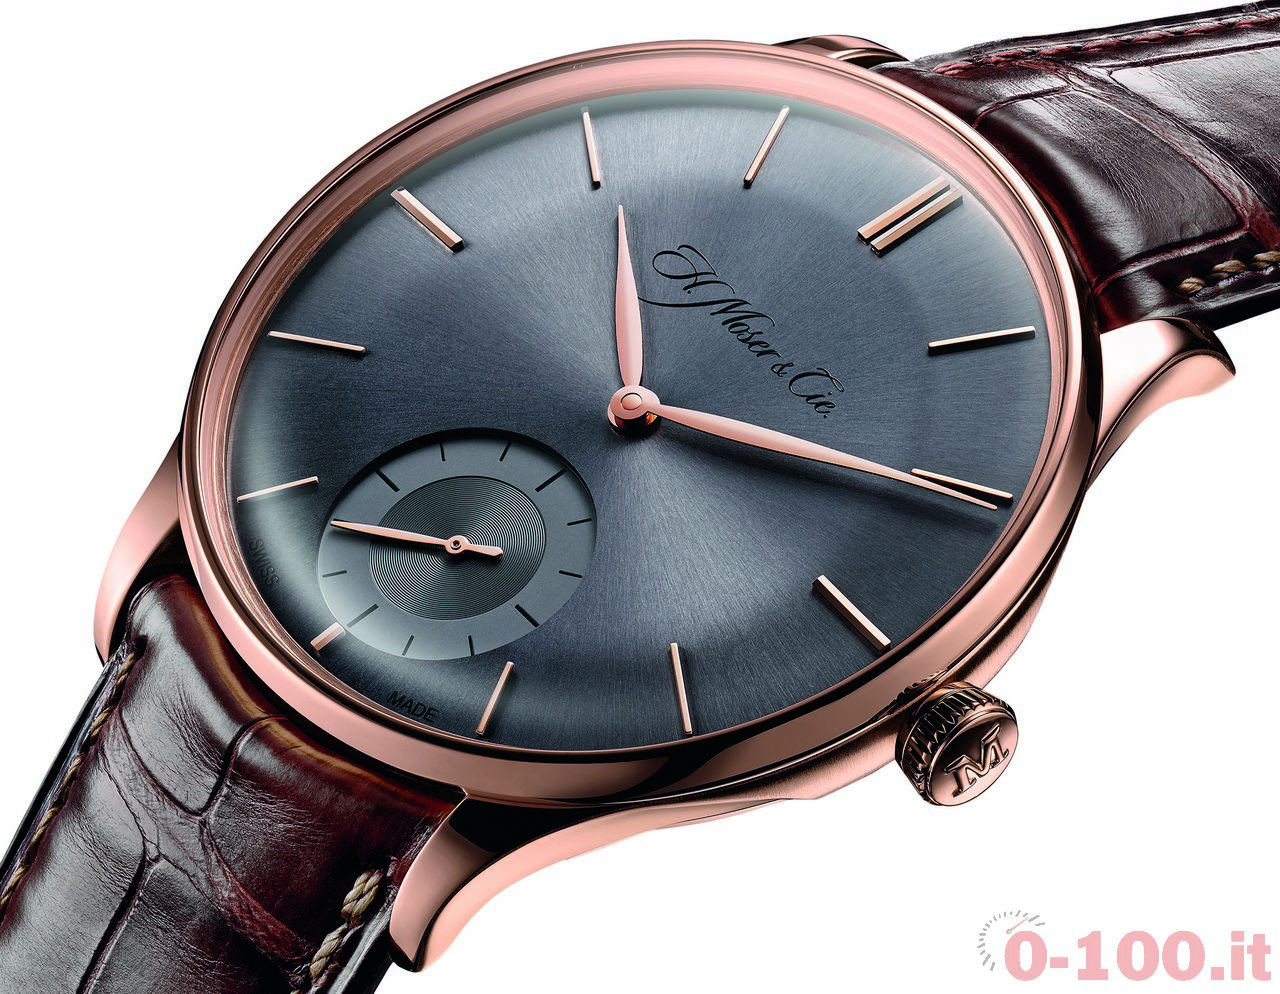 Baselworld-2014-H. Moser & Cie Venturer Small Seconds _0-10010